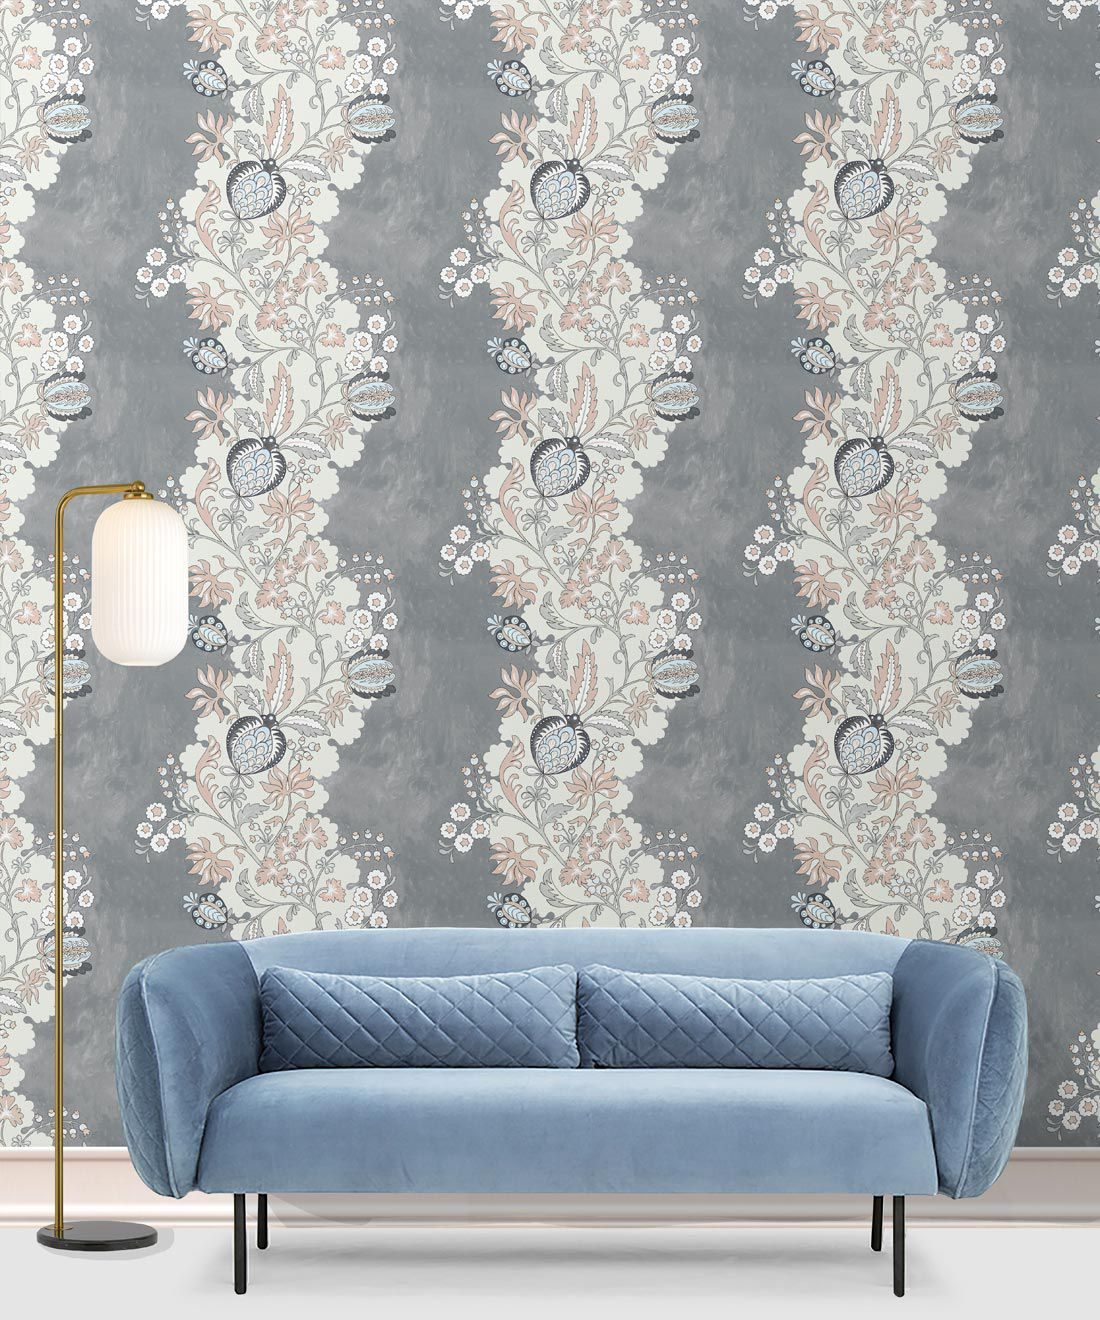 Pomegranate Wallpaper • Dusty Pink • Insitu with Blue Sofa